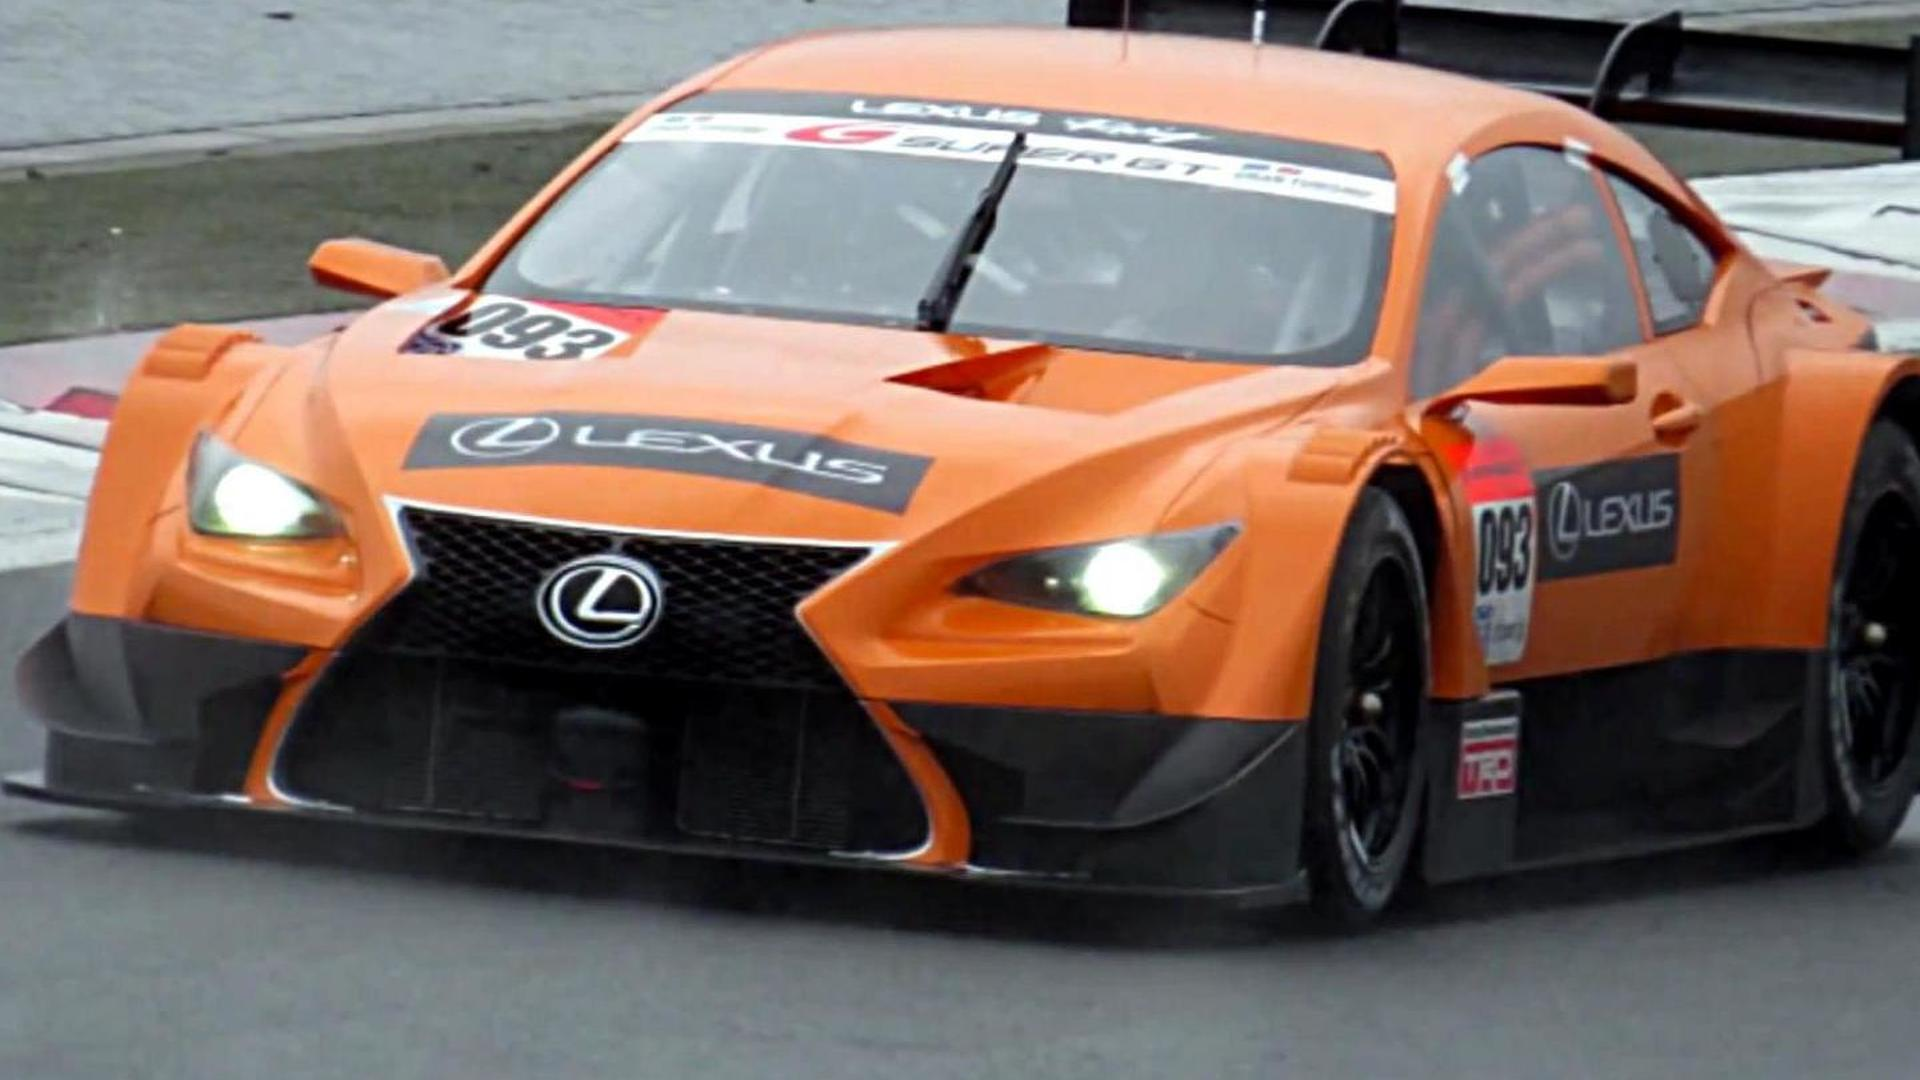 https://icdn-0.motor1.com/images/mgl/6NgmE/s1/2013-414862-lexus-lf-cc-race-car-spy-video-screenshot-30-09-20131.jpg